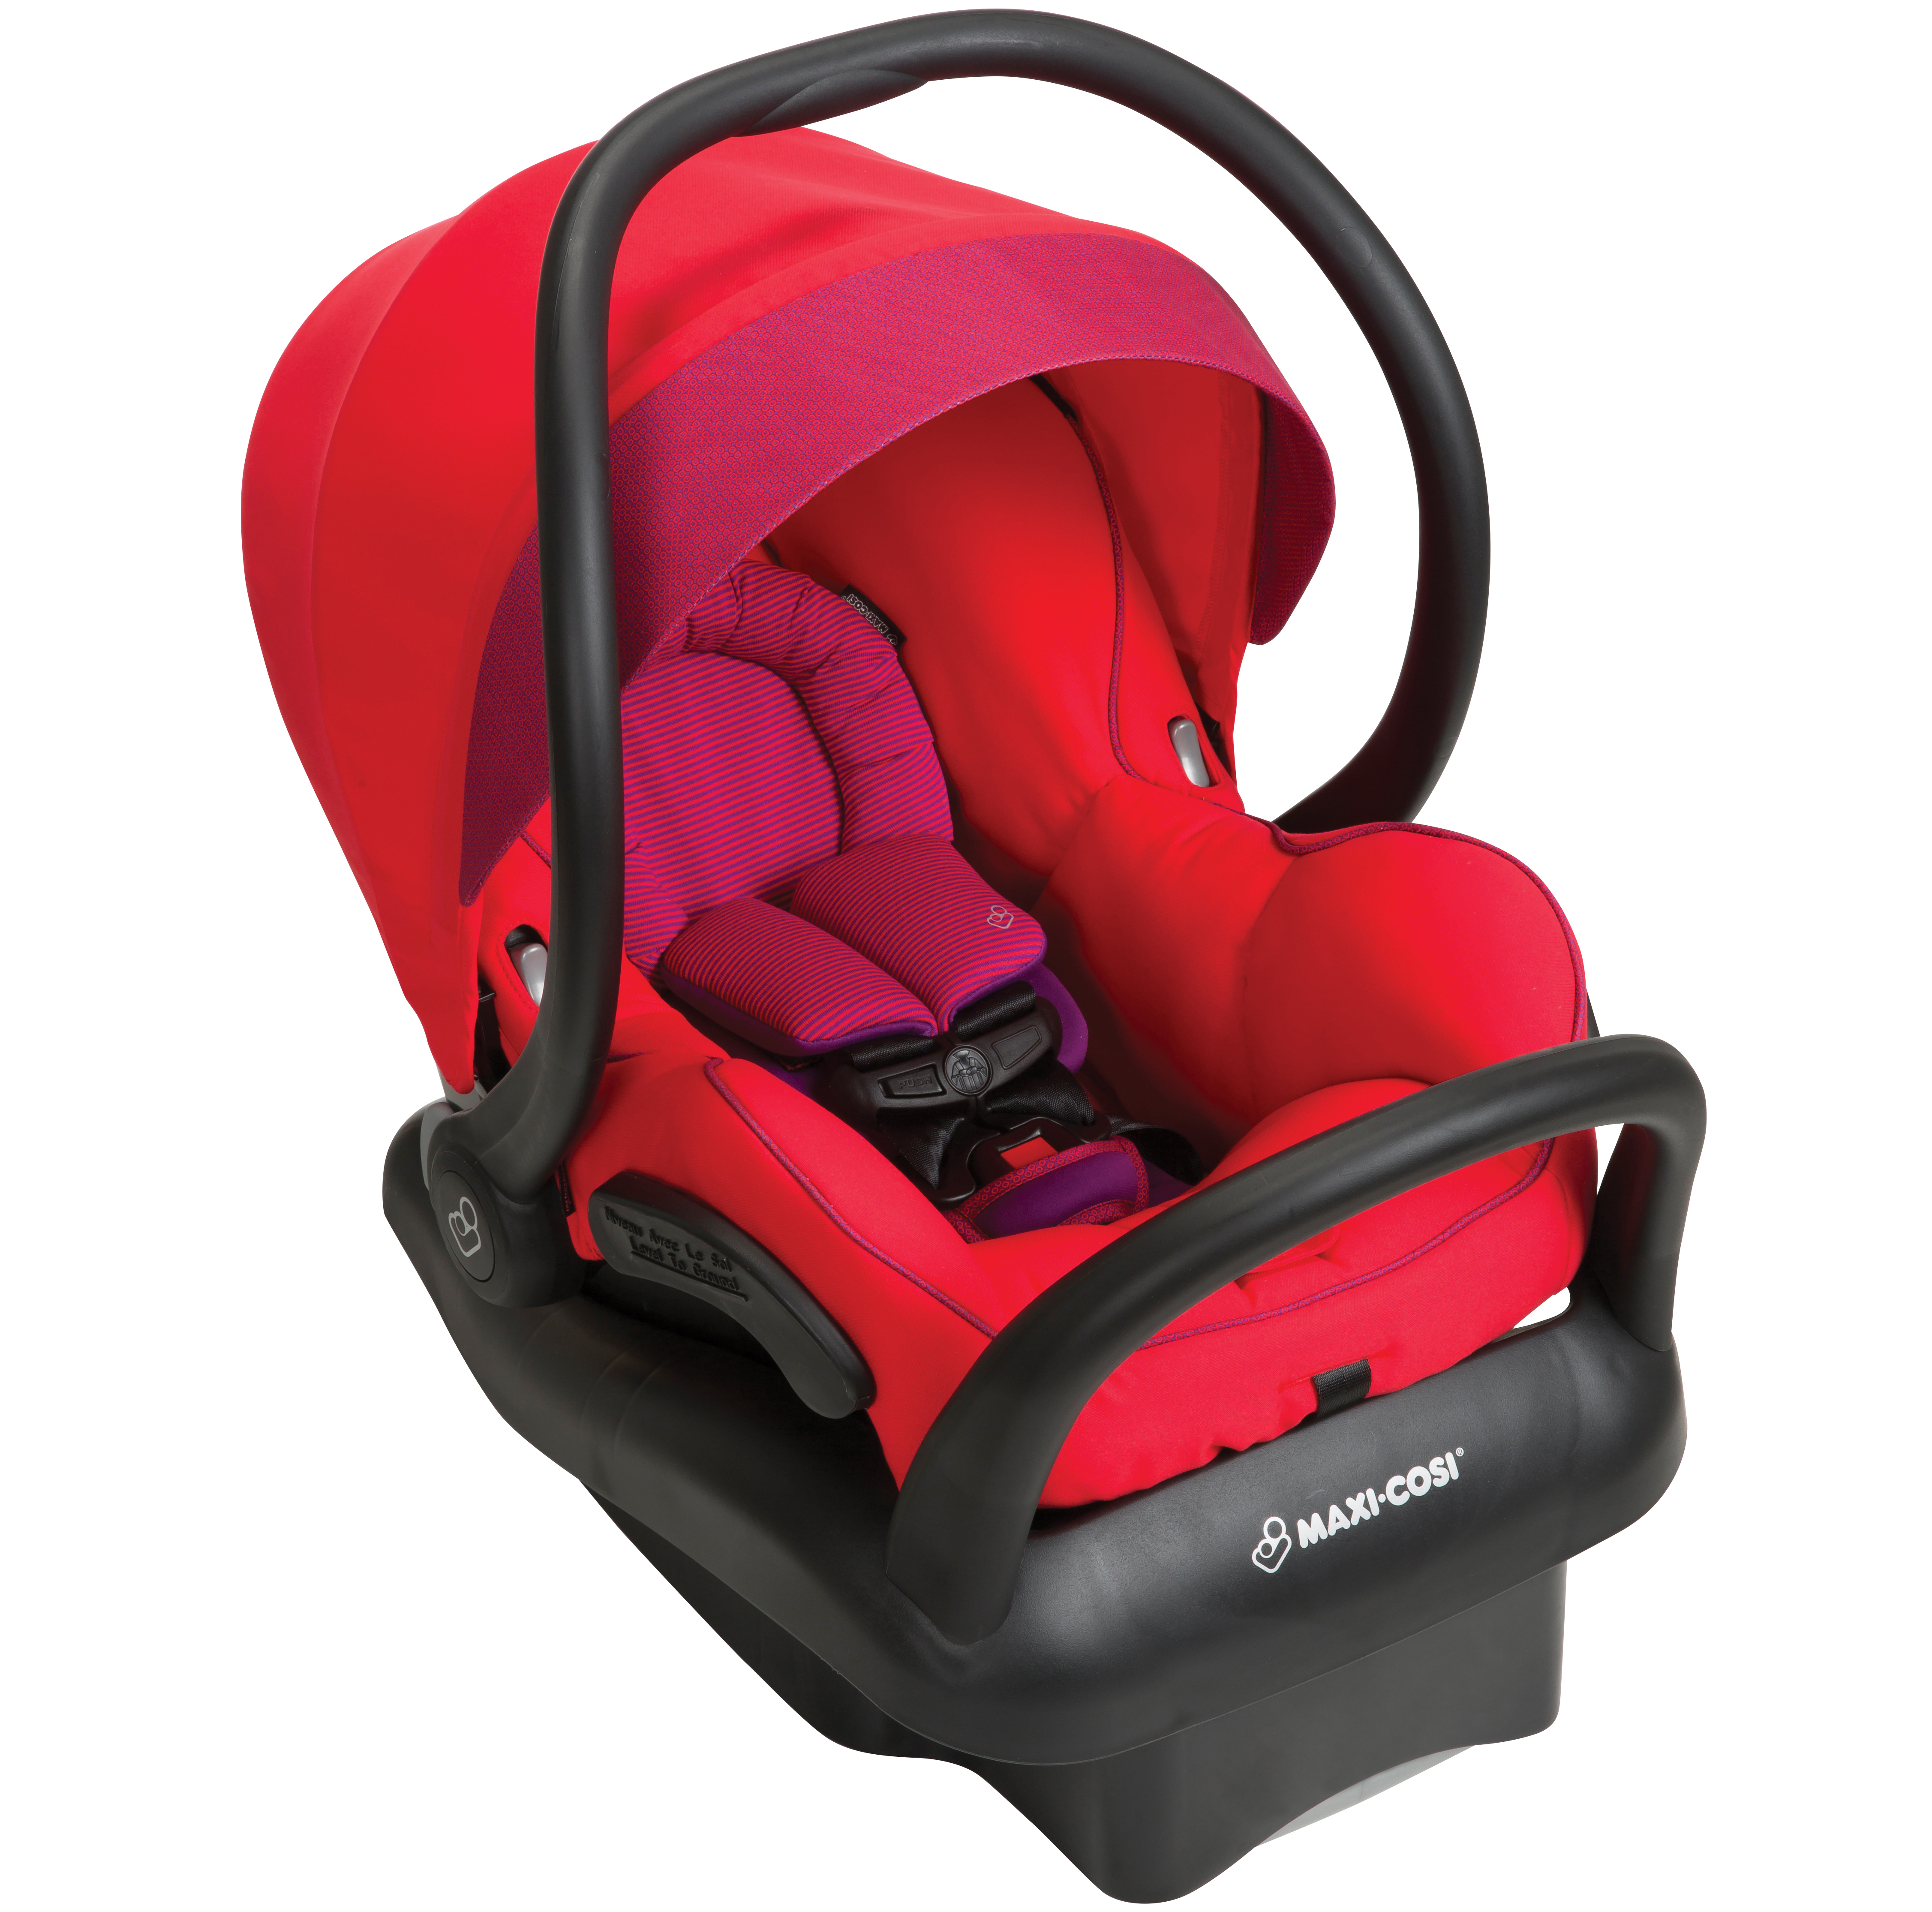 Dorel Juvenile Maxi-Cosi Mico Max 30 Infant Car Seat, Red Orchid